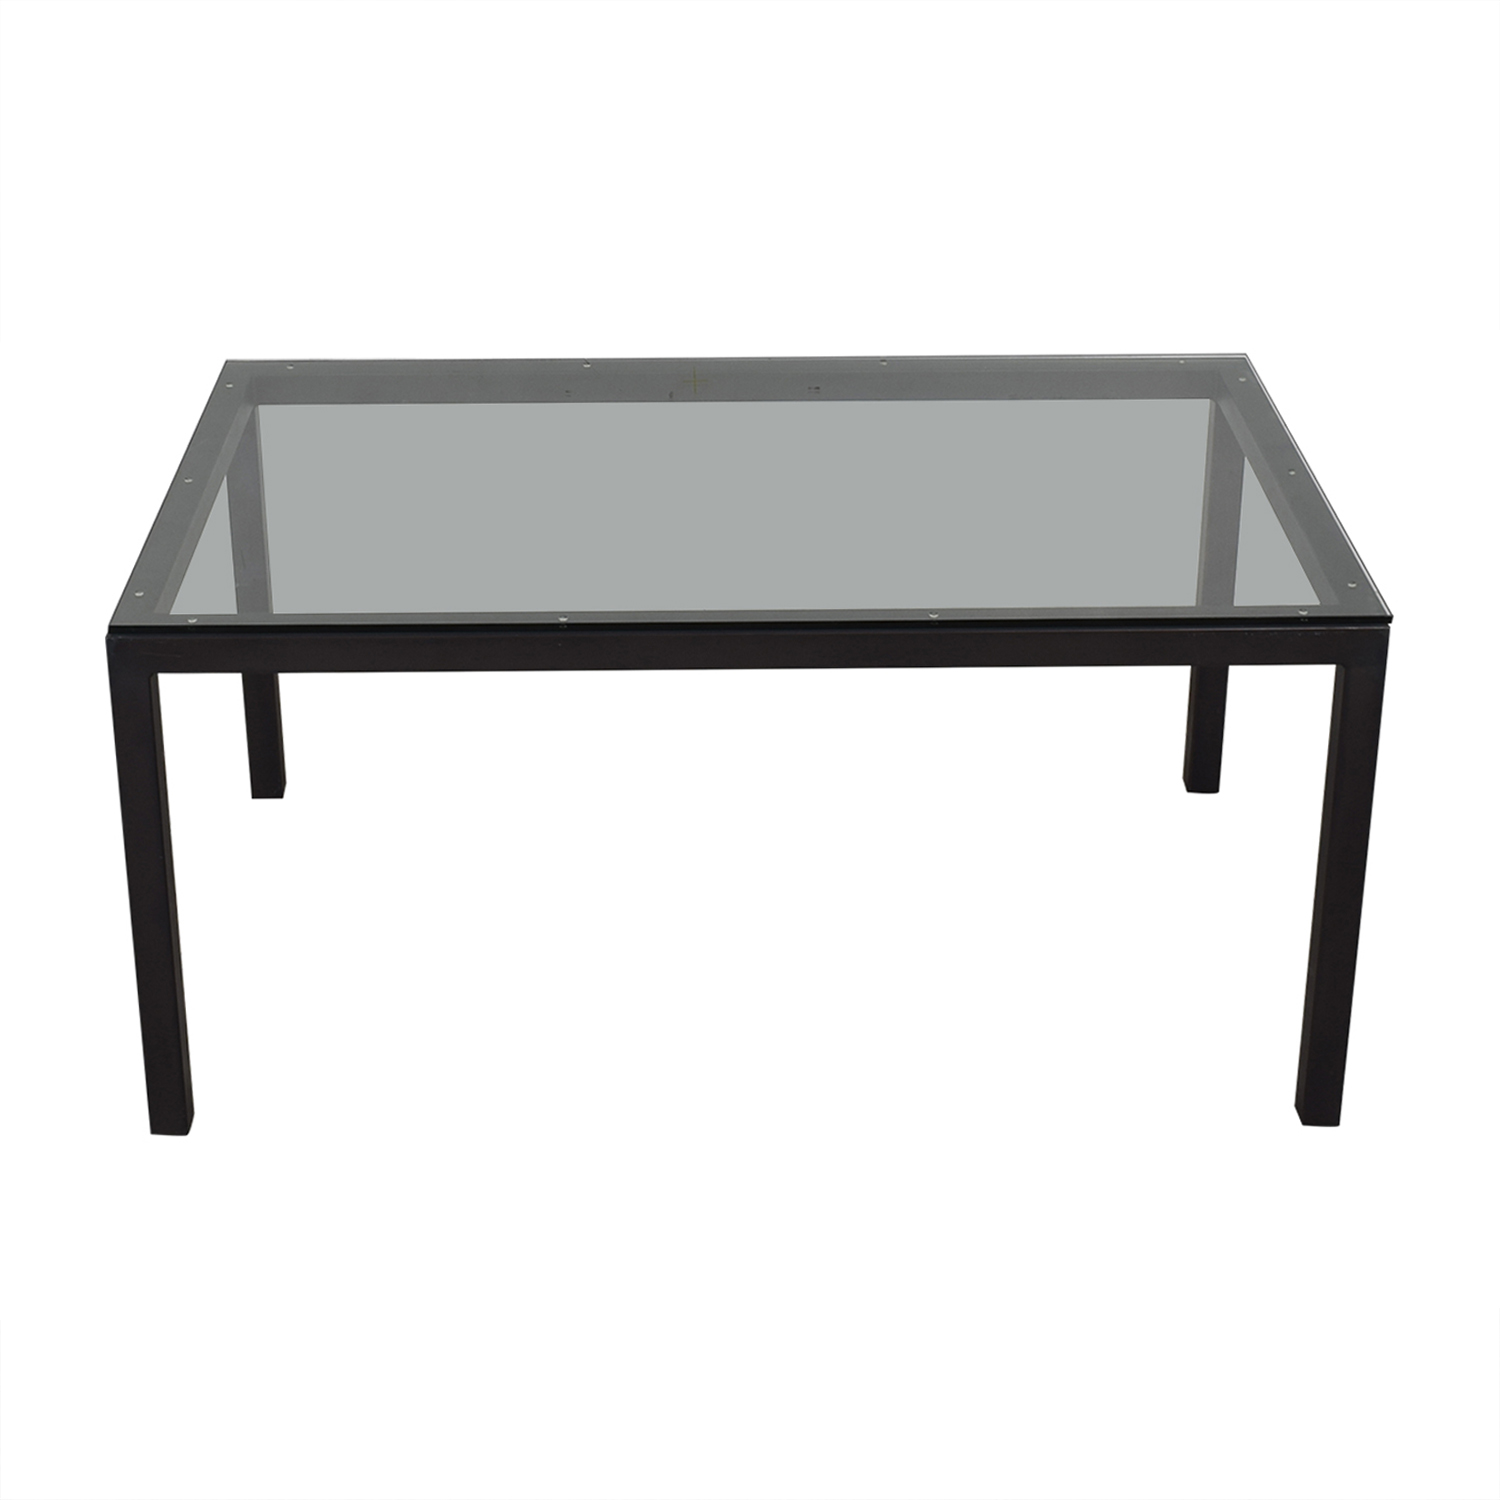 Room & Board Parsons Dining Table / Dinner Tables